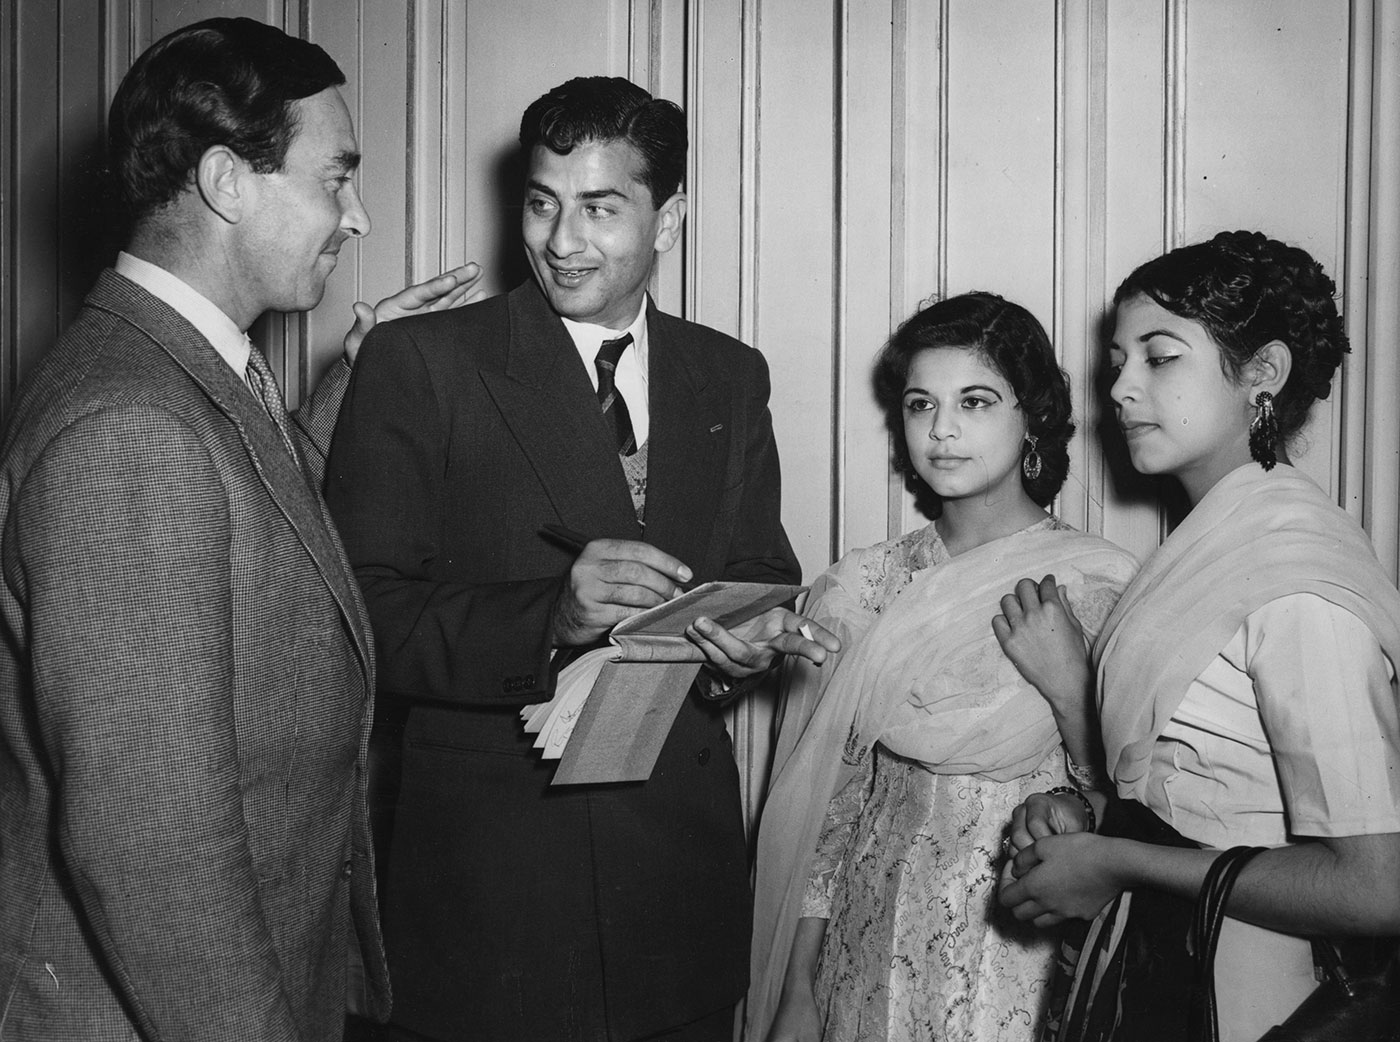 Denis Compton greets Fazal Mahmood, who is signing autographs for fans